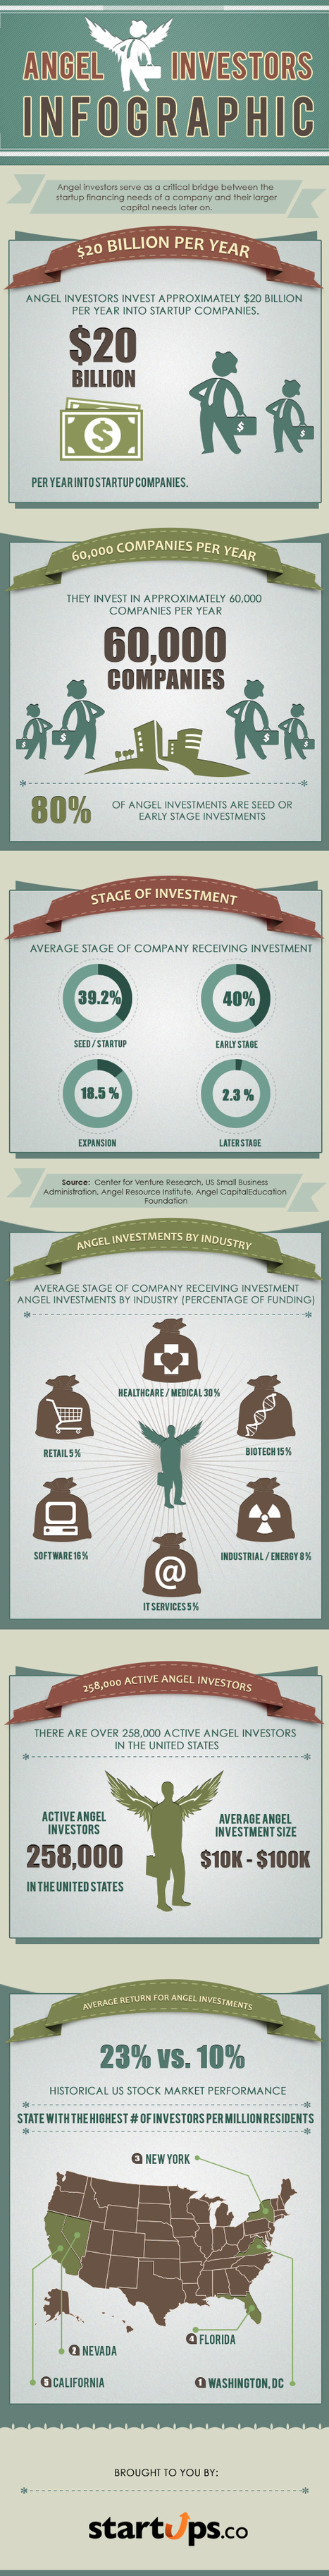 Angel investors put $20B a year into startups (infographic) | CrowdSourcing InfoGraphics | Scoop.it